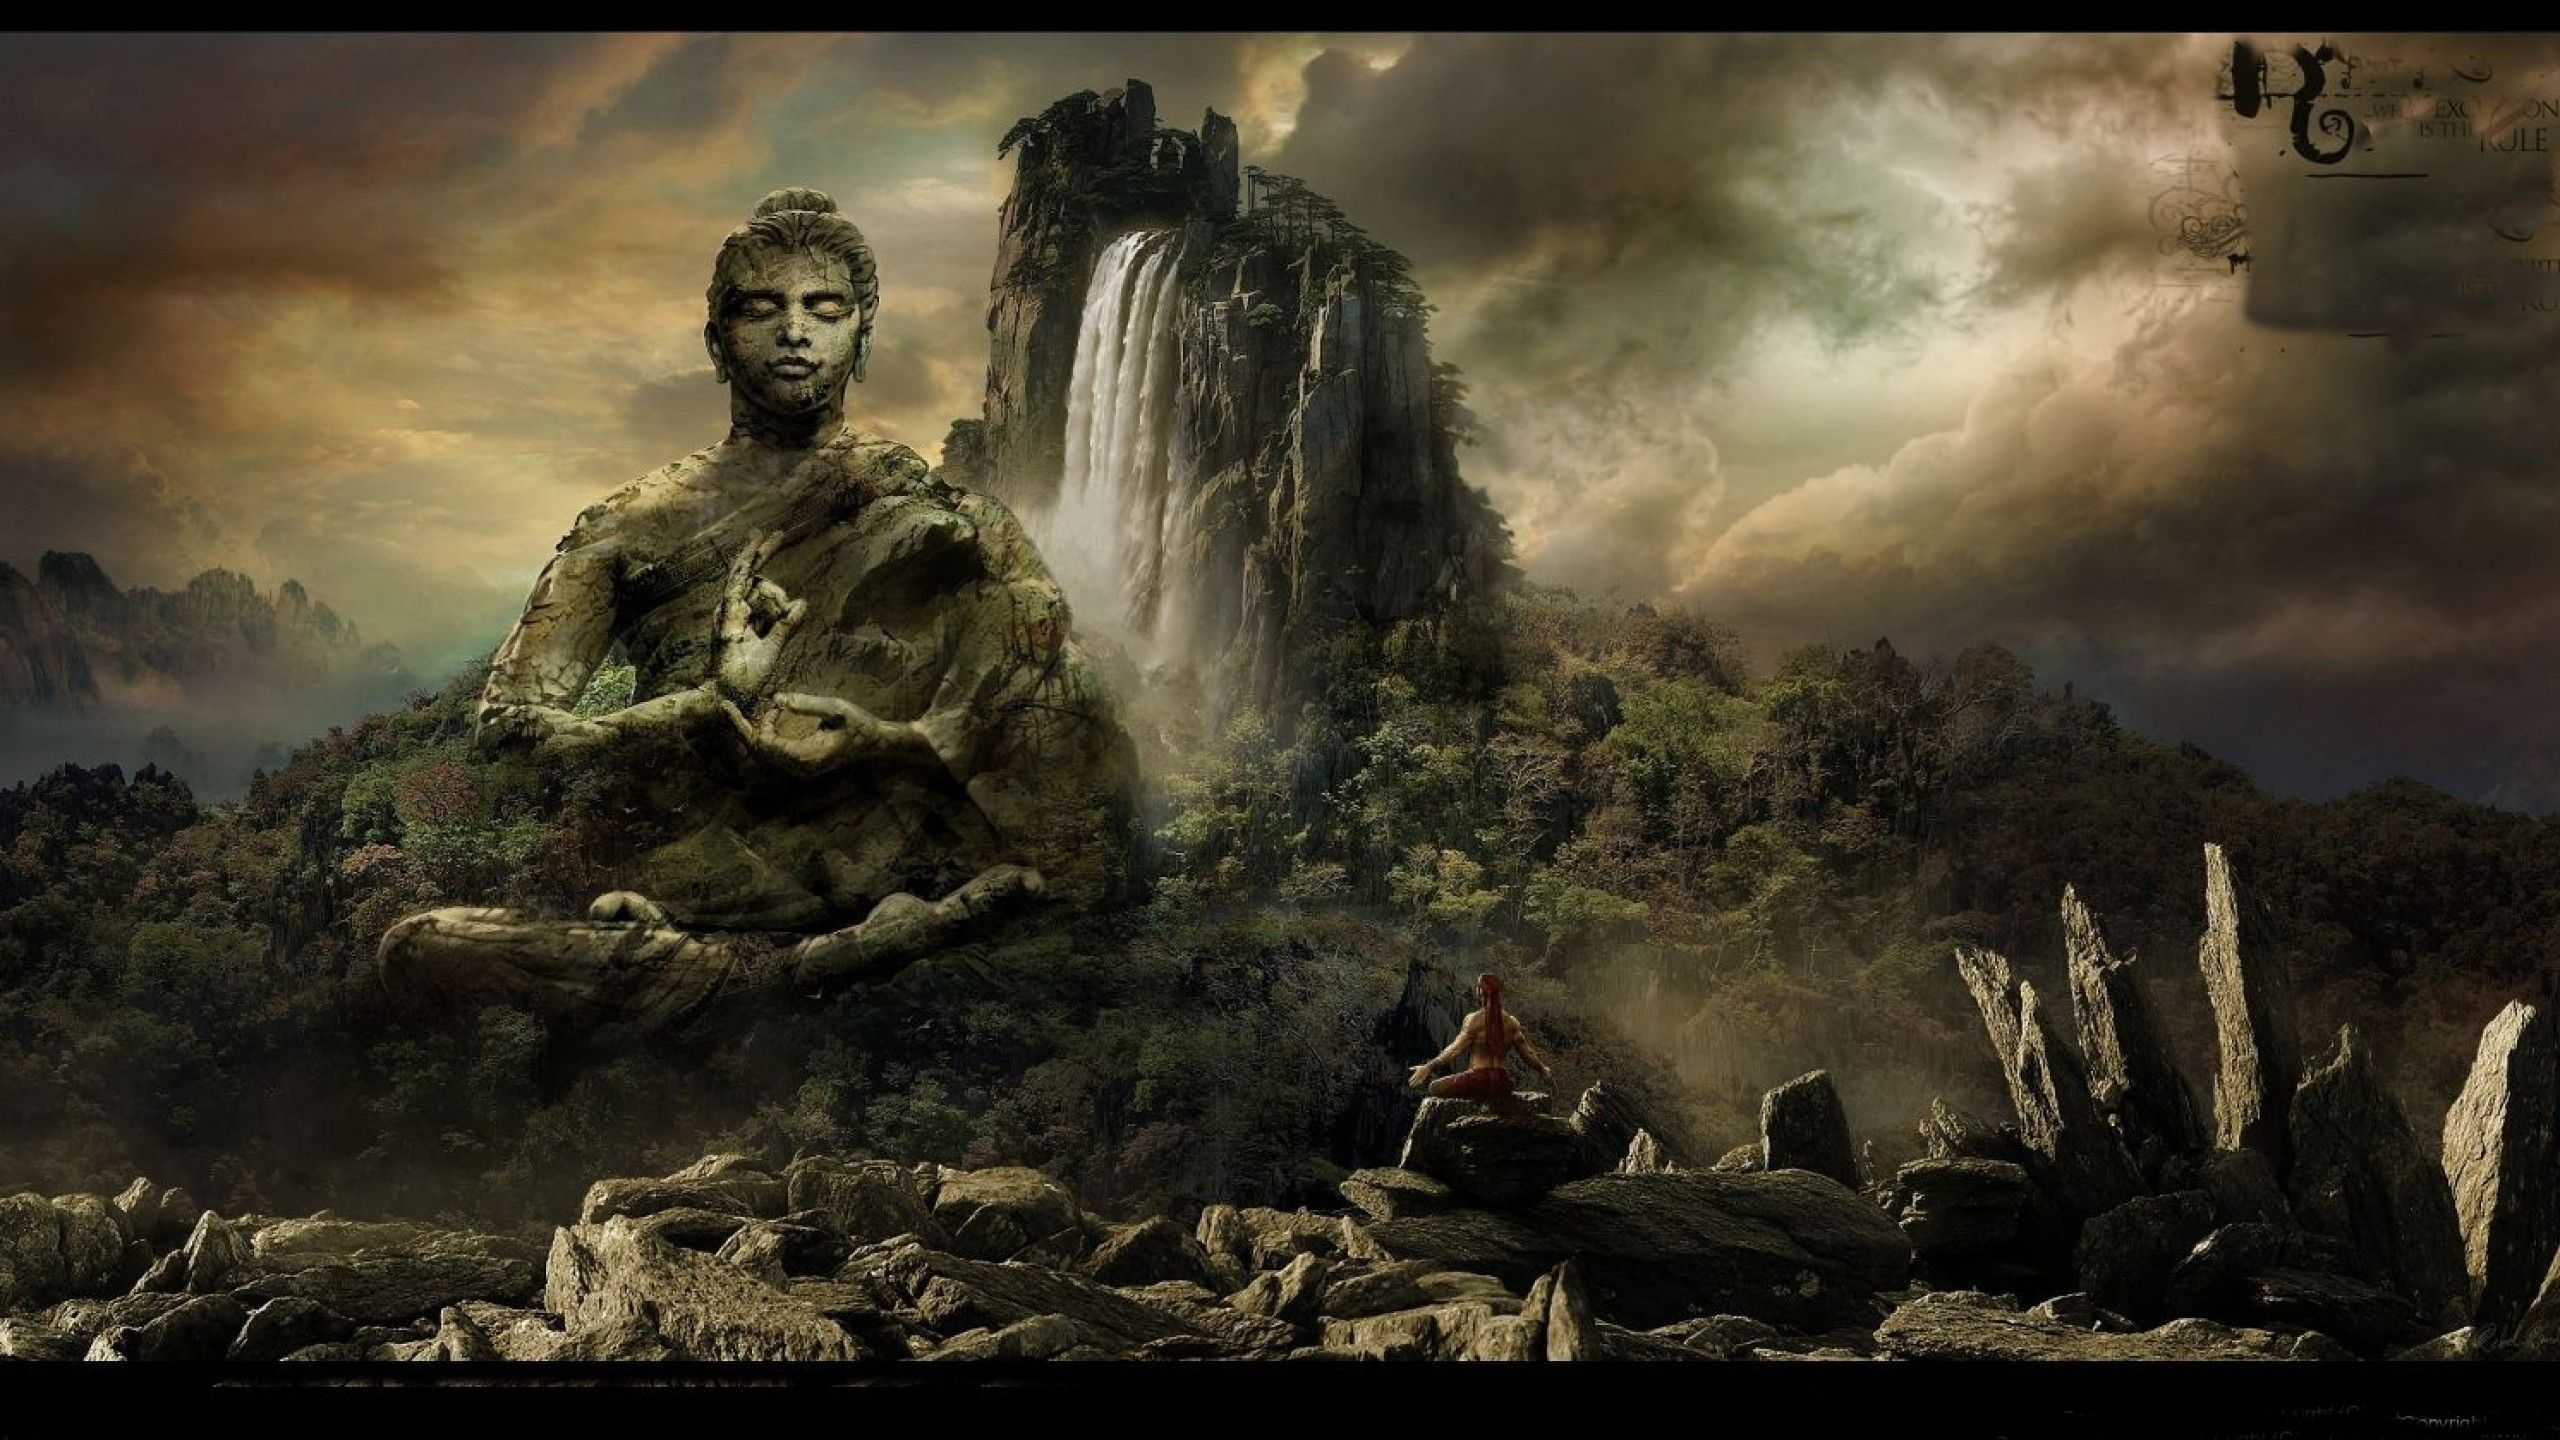 Top Gautama Buddha Quotes HD Wallpapers Daily Backgrounds In 2560x1440 Of 42